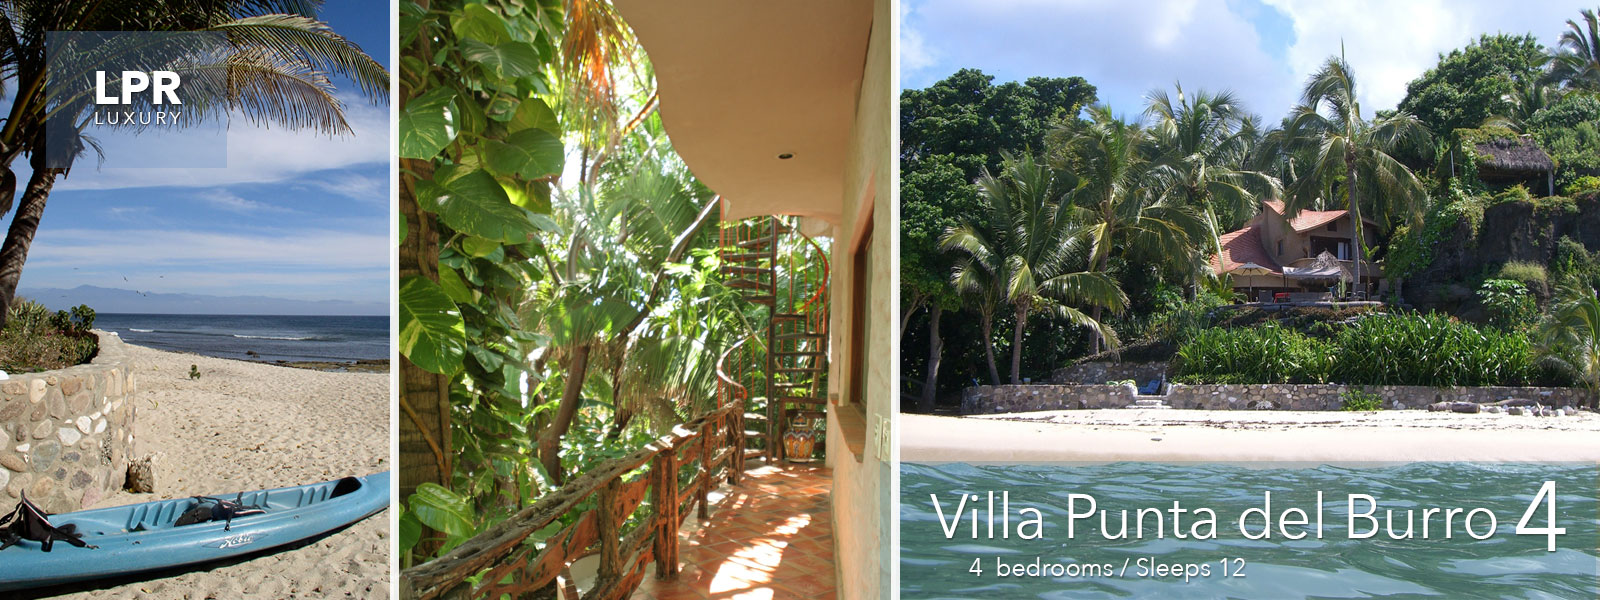 Villa Punta del Burro 4 - North Shore Puerto Vallarta - Punta de Mita - Mexico Real Estate and Rentals